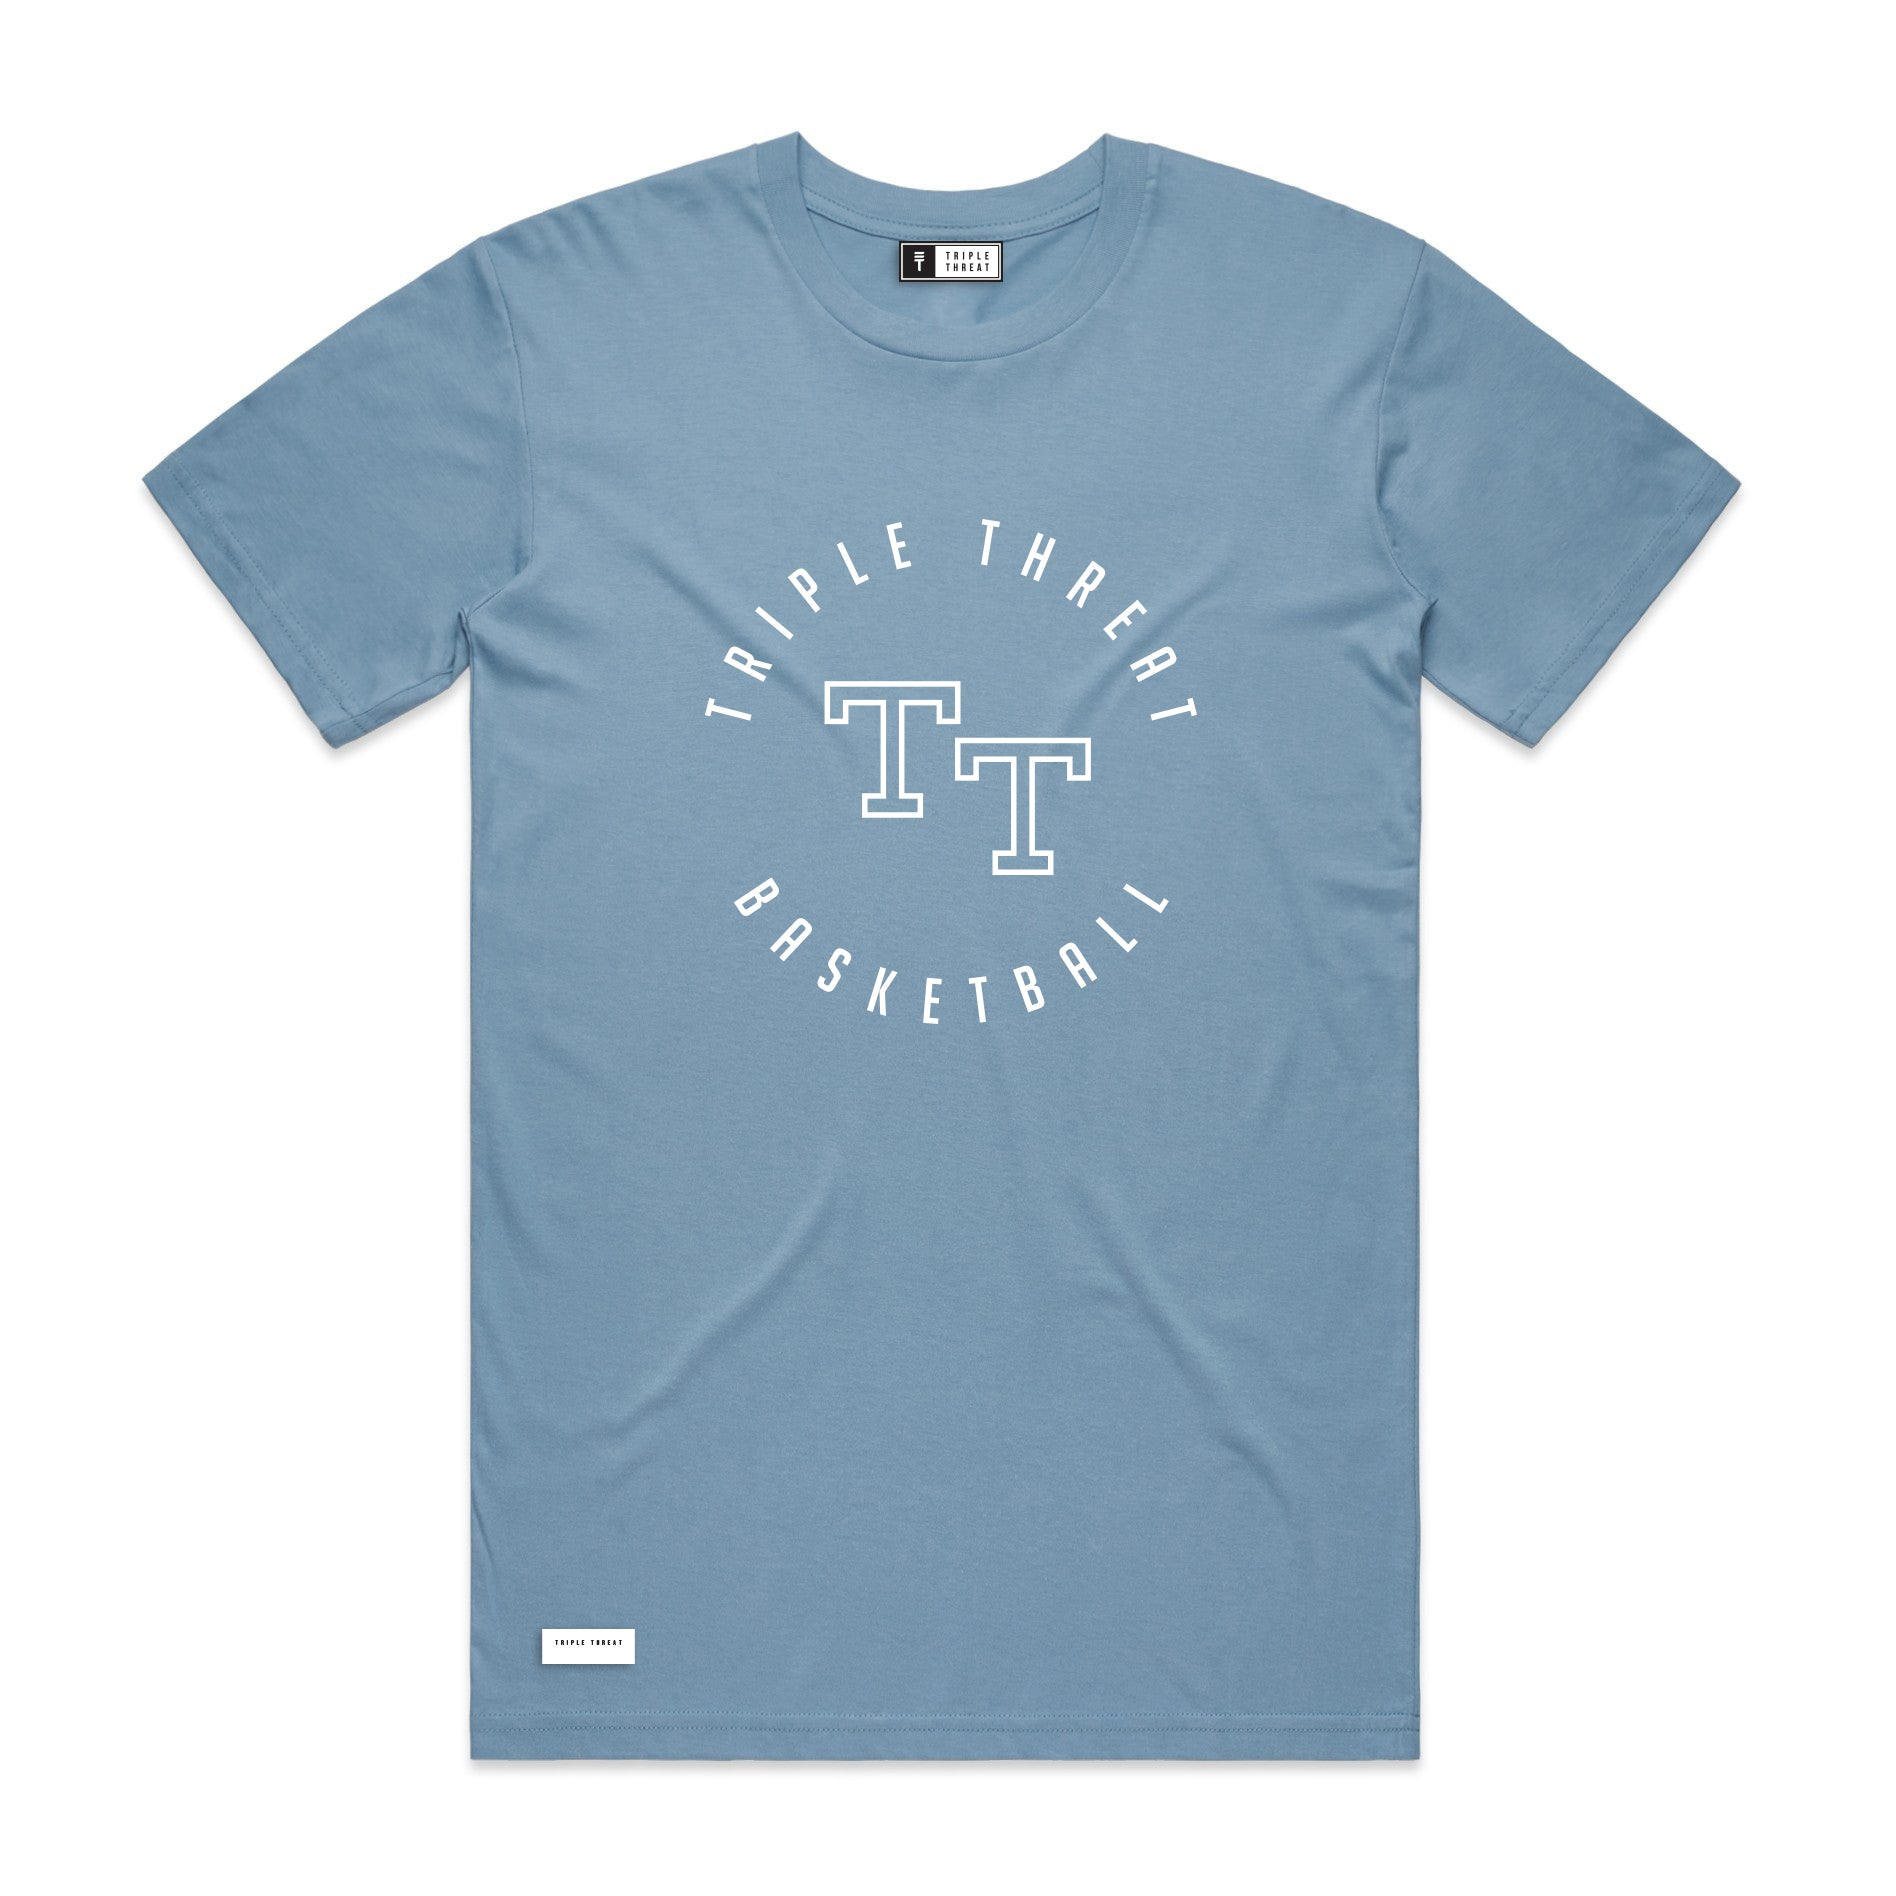 ROUND LOGO T-SHIRT - LIGHT BLUE